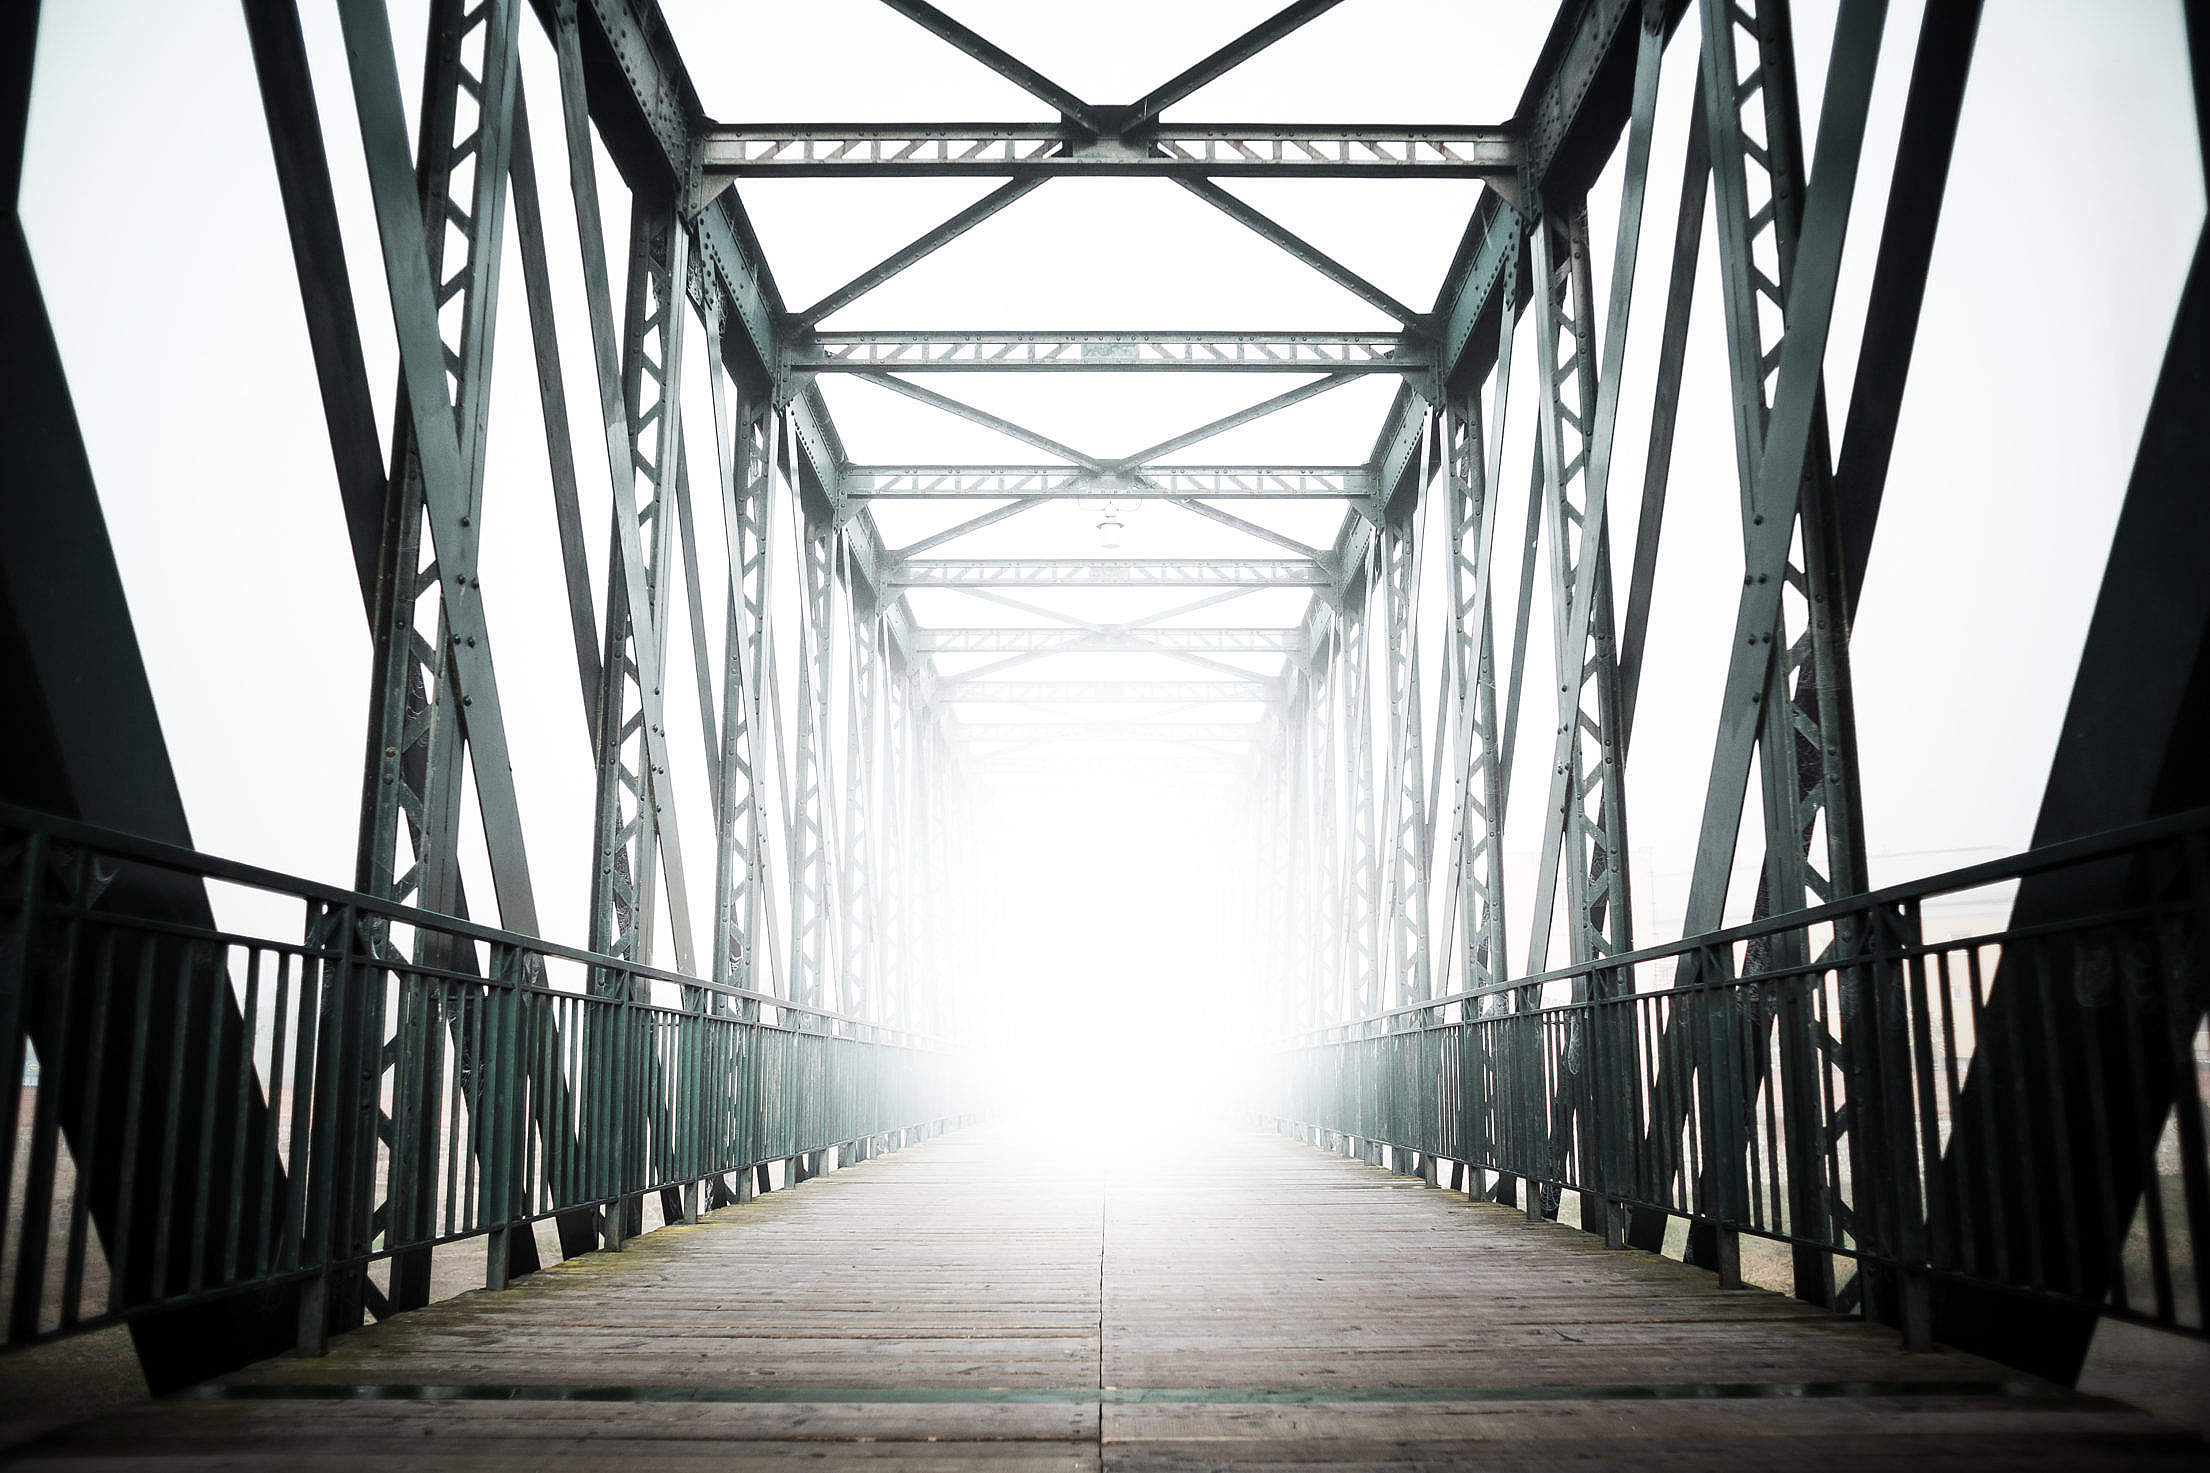 Green Old Steel Bridge in the Fog Free Stock Photo